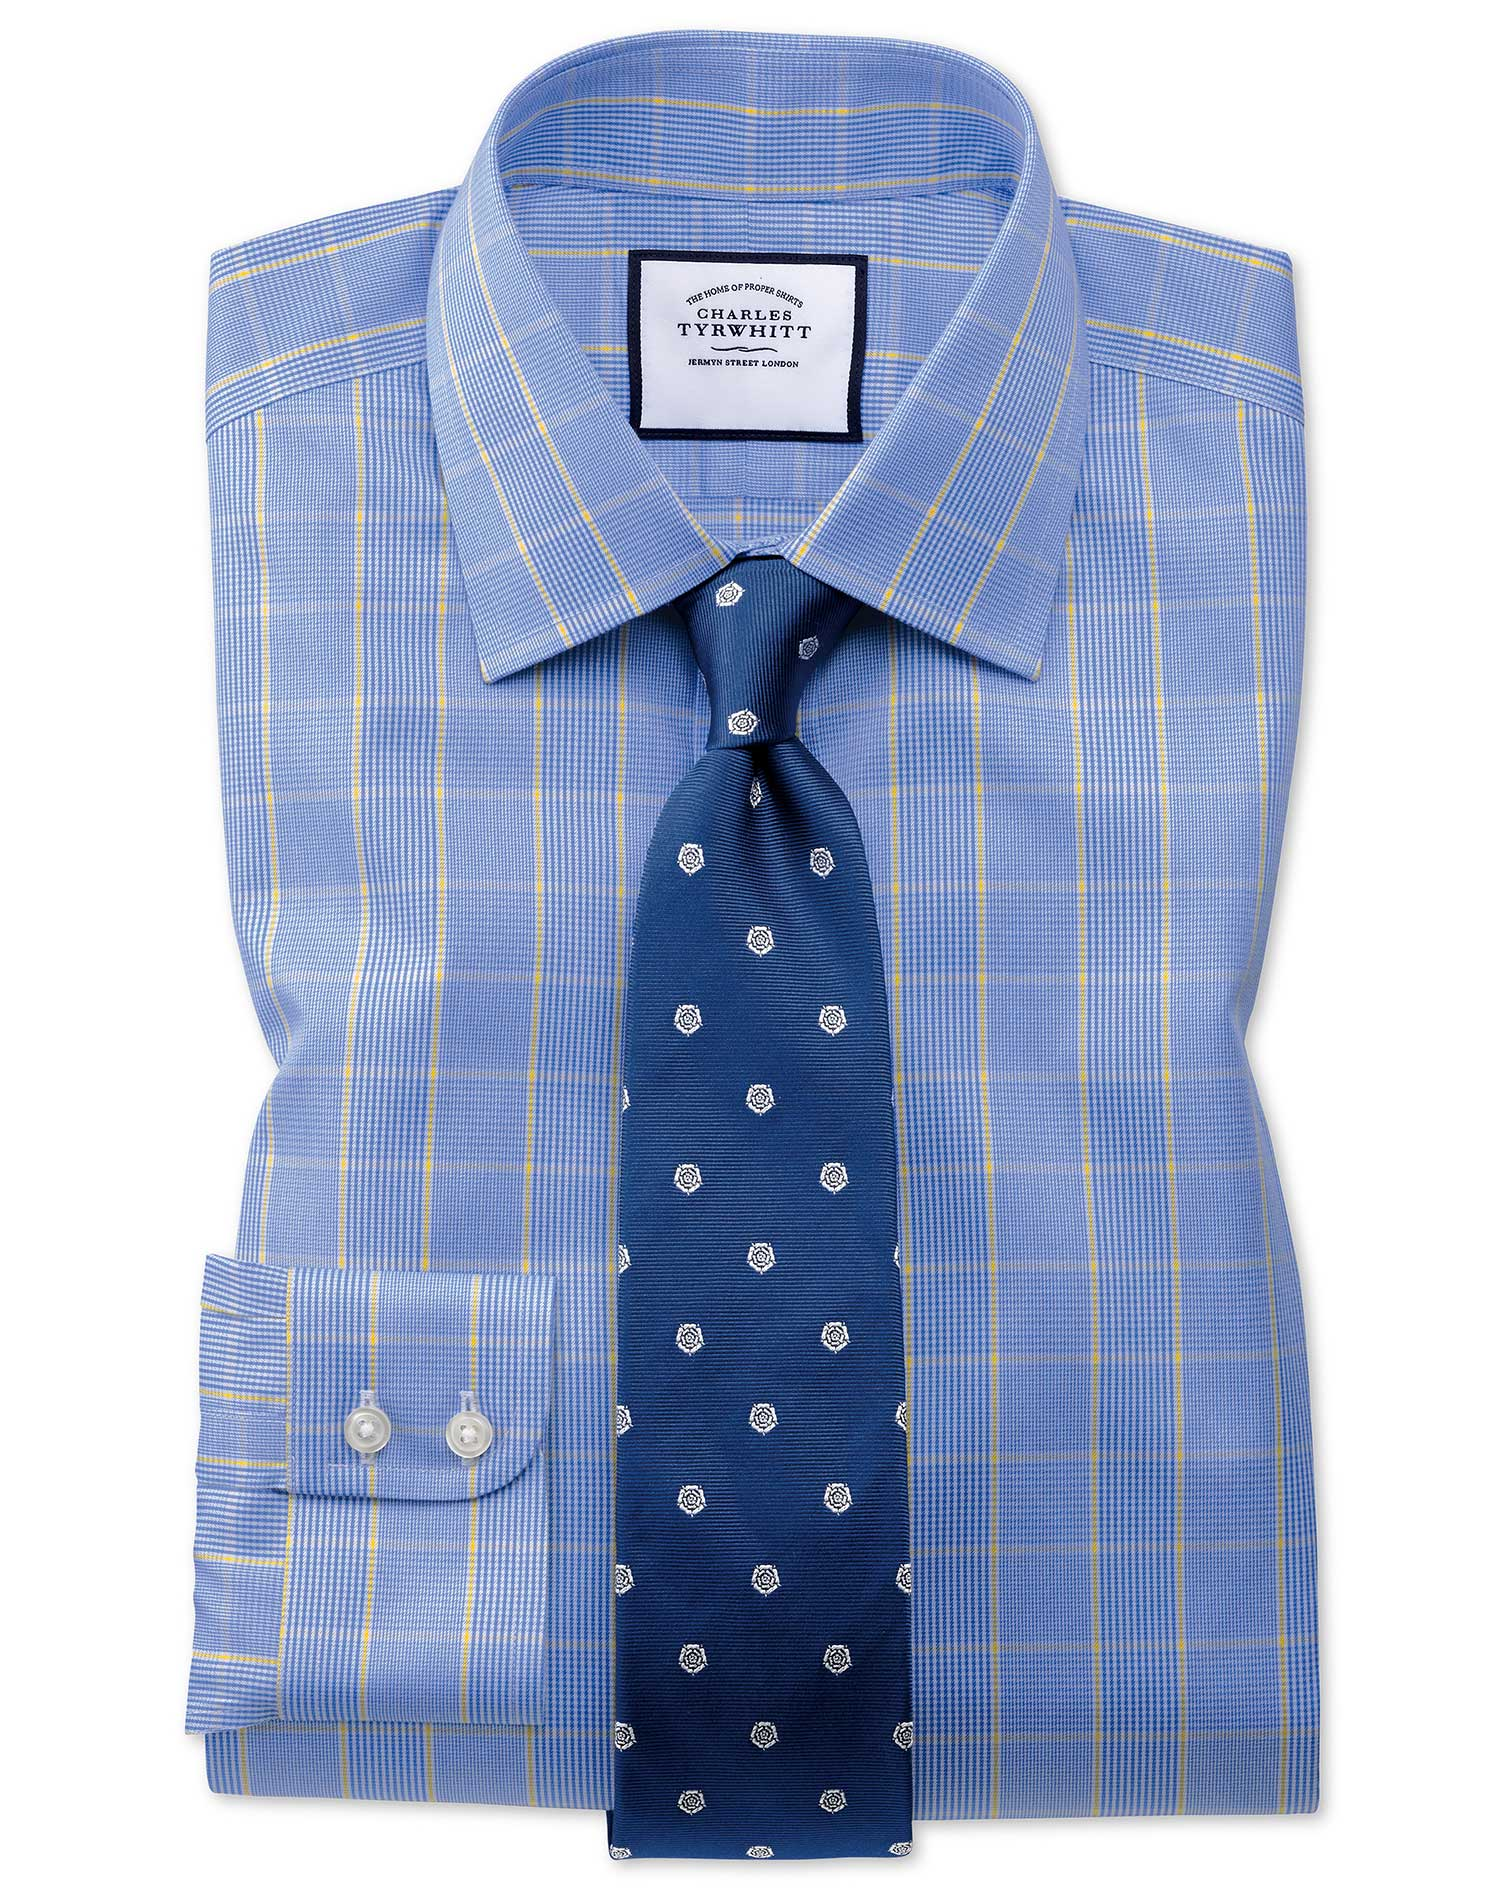 Extra Slim Fit Non-Iron Prince Of Wales Blue and Gold Cotton Formal Shirt Double Cuff Size 17/35 by